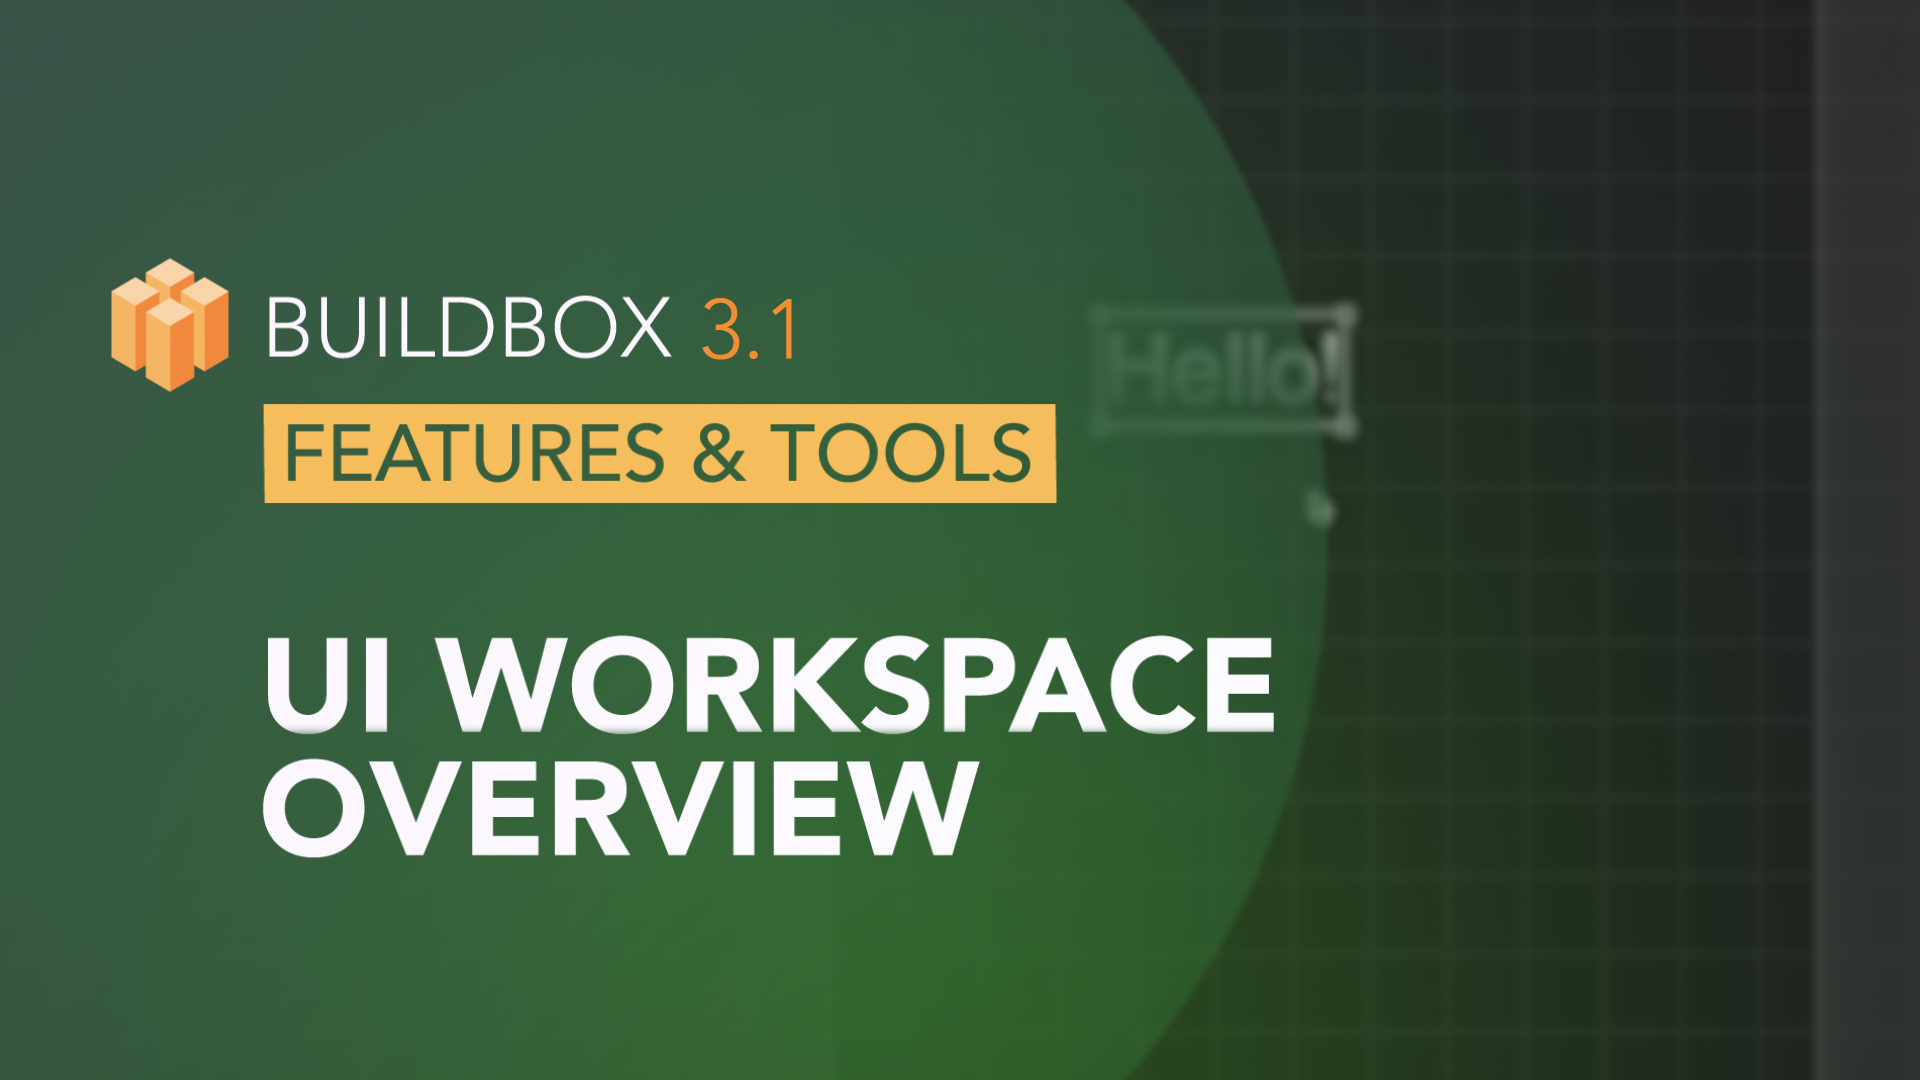 UI Workspace Overview